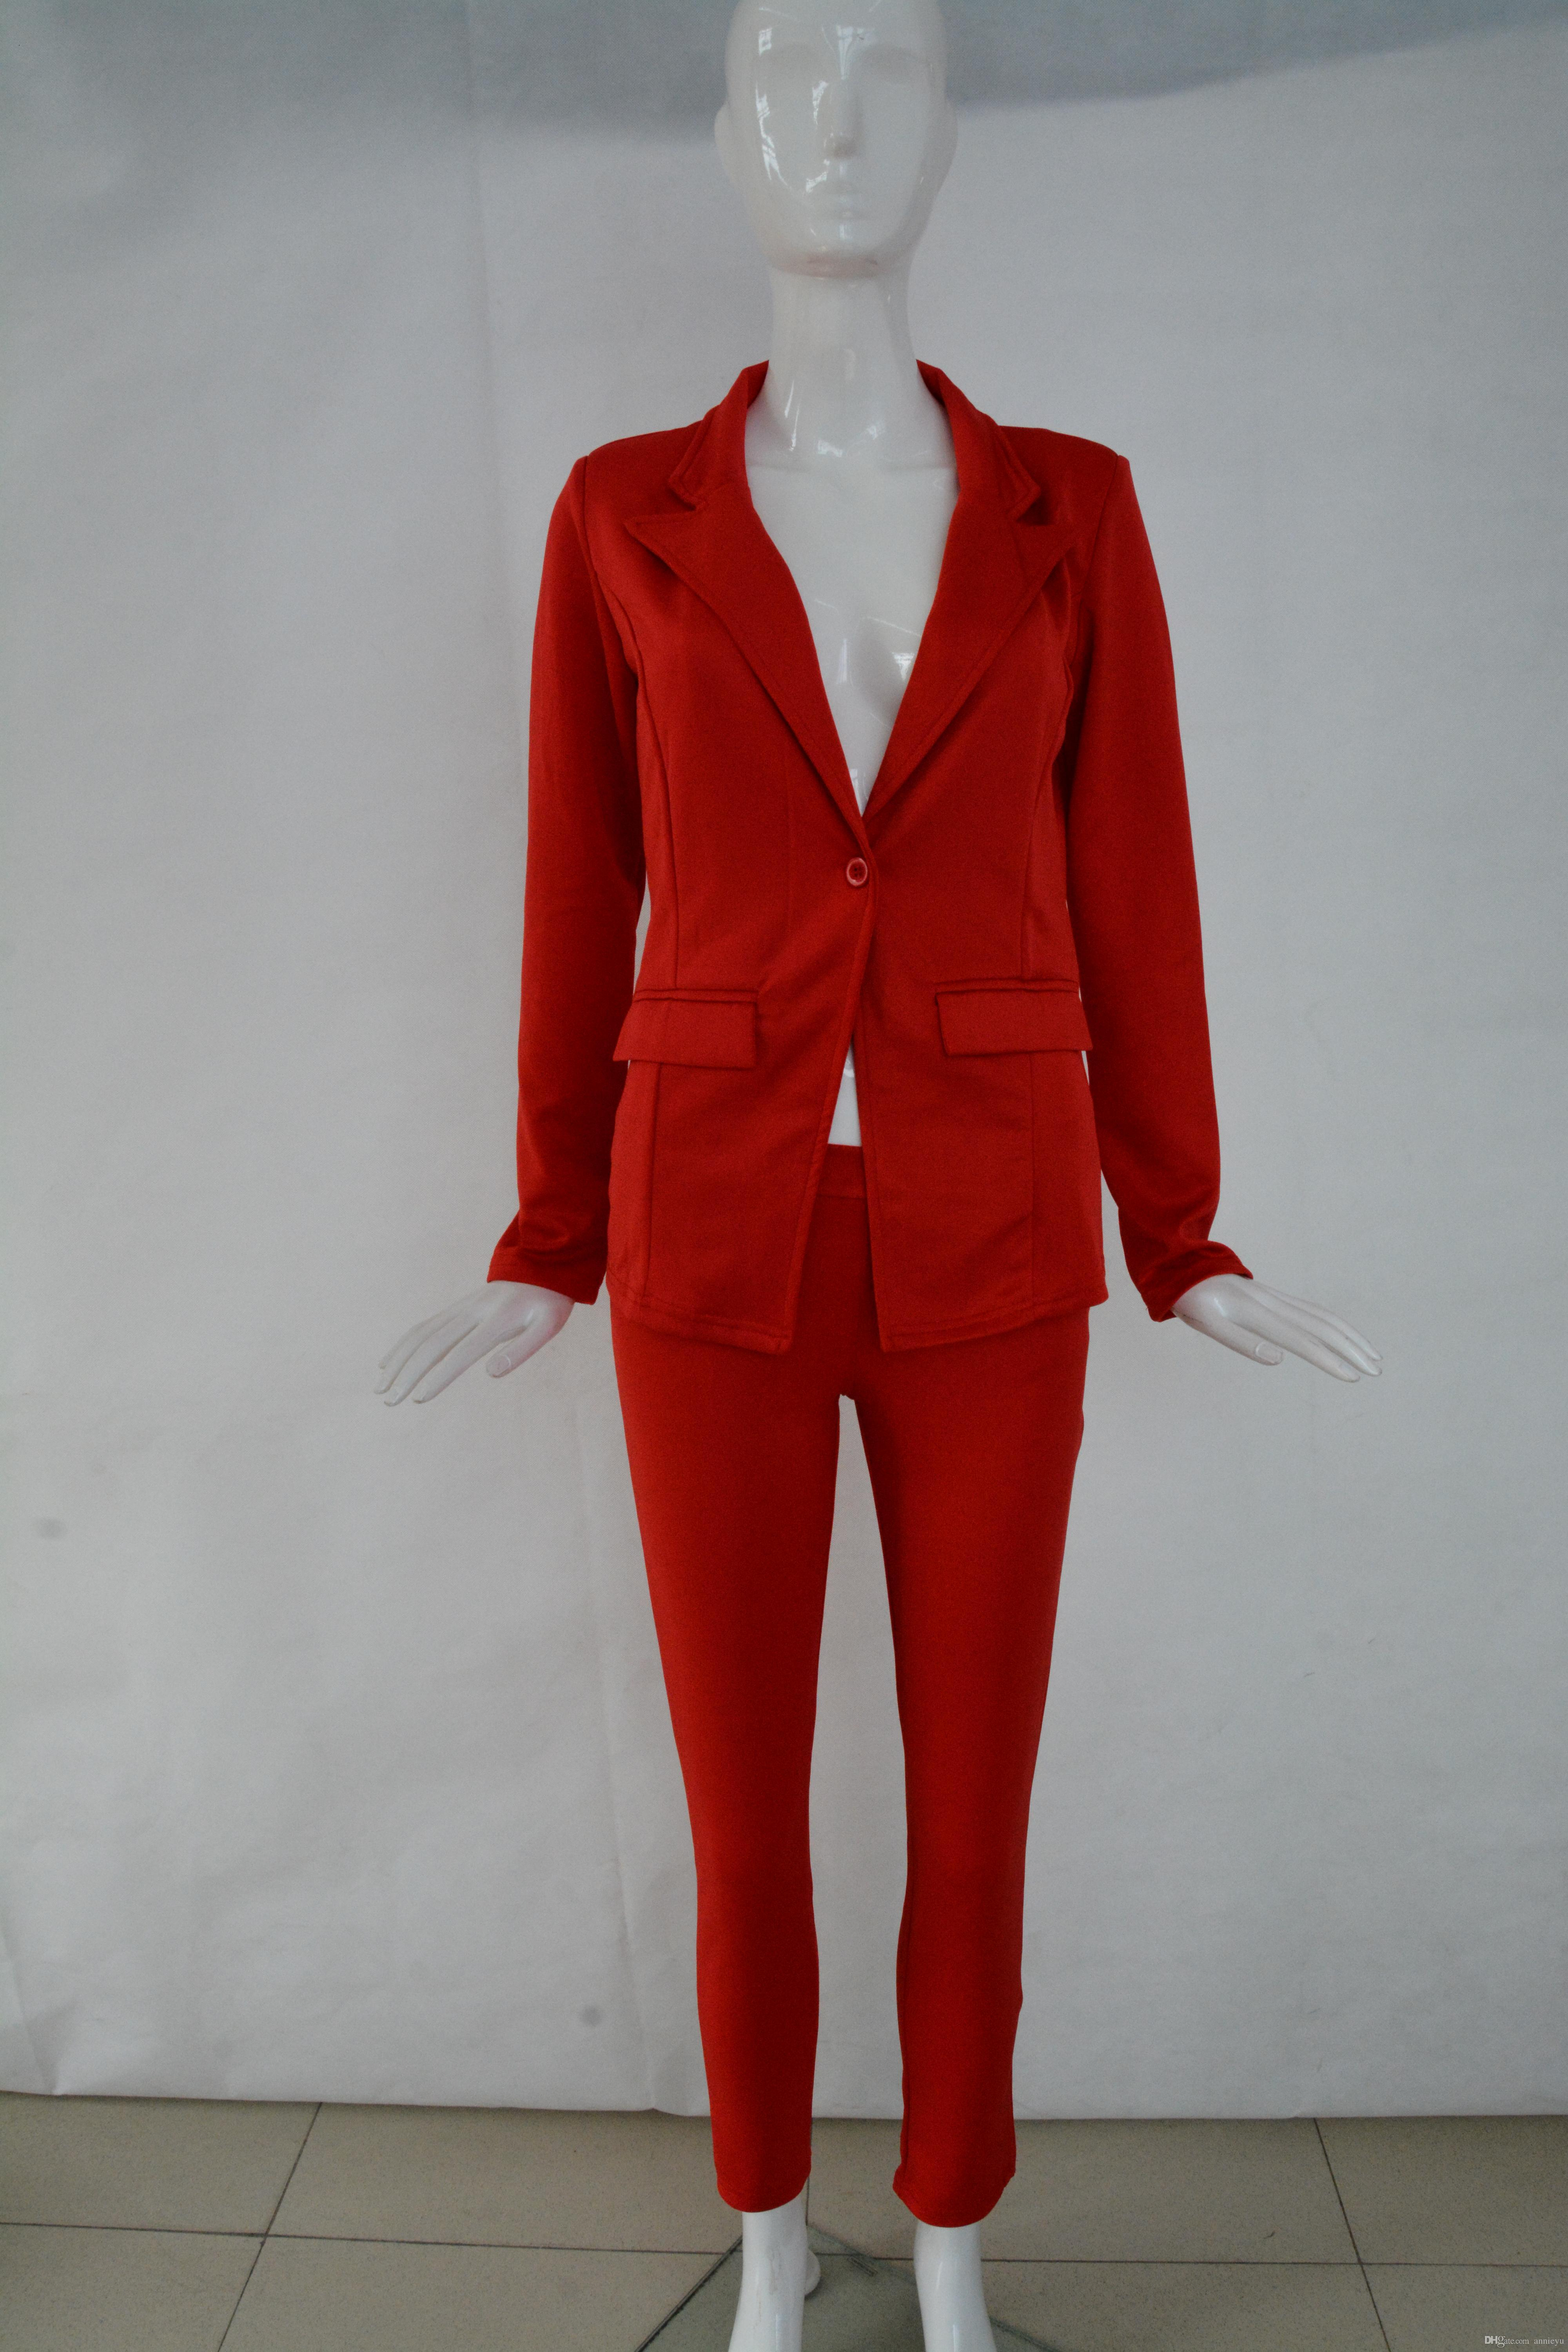 2016 OL style women hot red suit slim blazer and pants suit Office Lady Suits Business Outfits Casual Girls Suits For Work